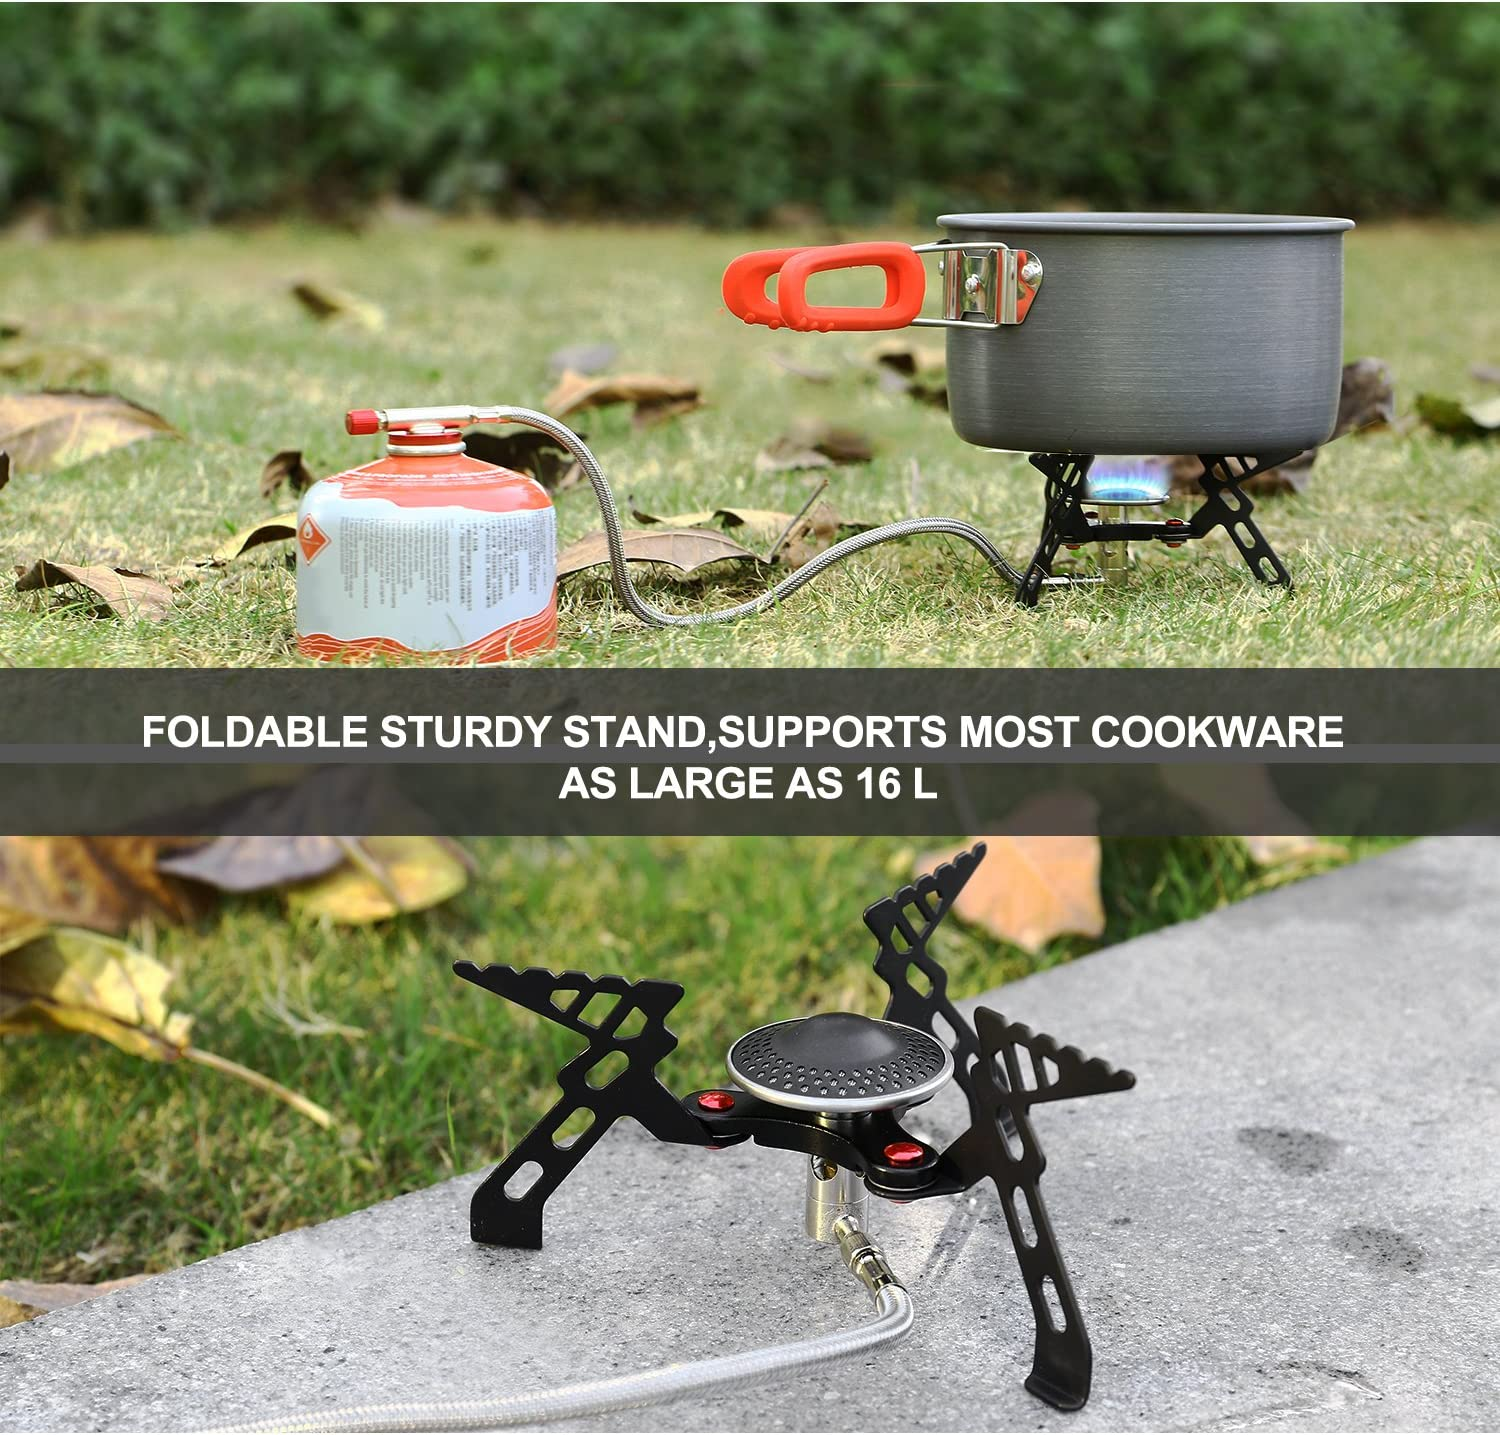 Andake Portable Camping Gas Stove Foldable Backpack Cooker with Carry Bag Energy Efficient Camping Stove Super Stable /& Wind-resistant